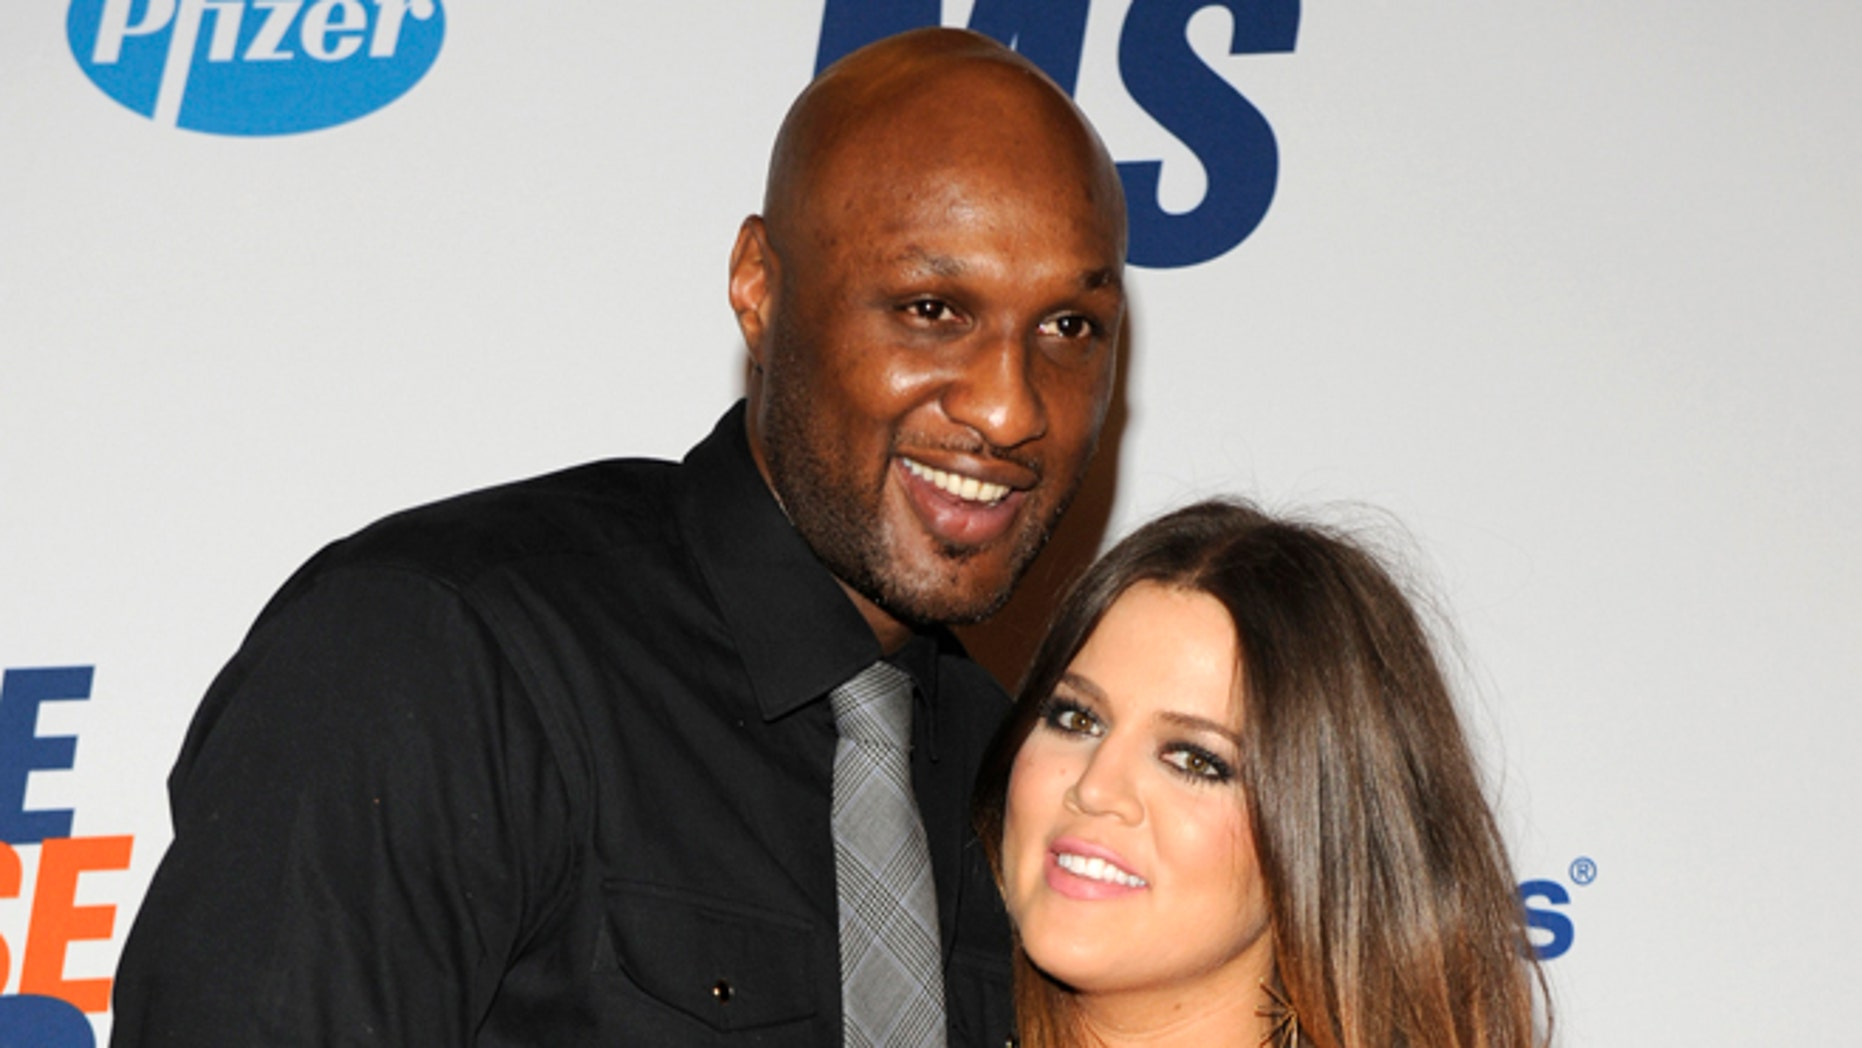 May 18, 2012. Lamar Odom (L), basketball player with the Dallas Mavericks of the NBA, and his wife Khloe Kardashian-Odom arrive for the 19th annual Race to Erase MS Gala in Los Angeles.